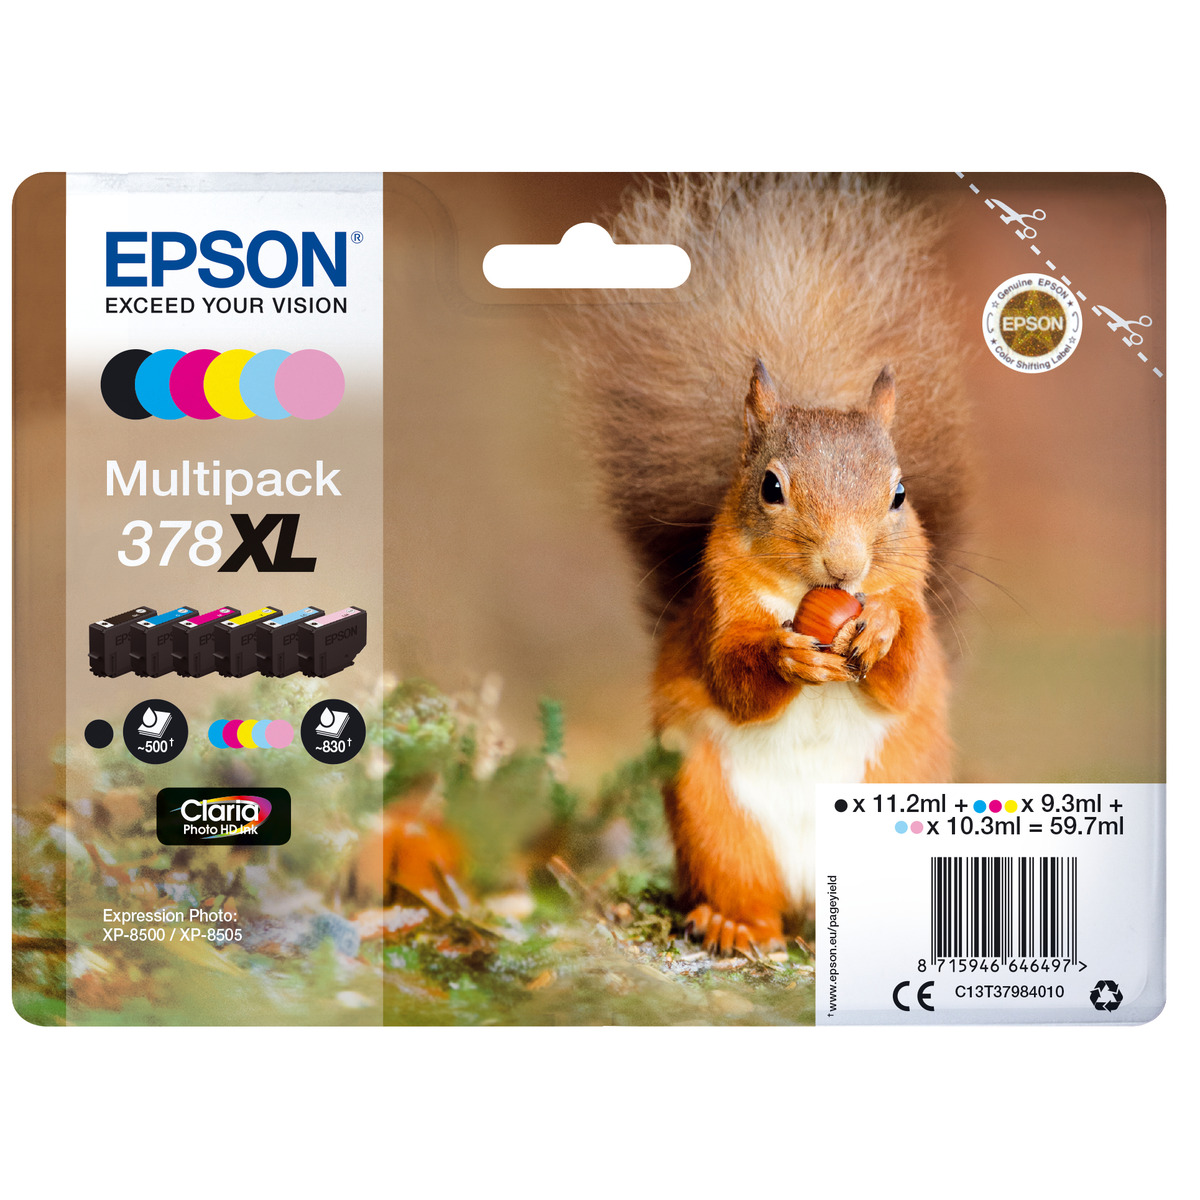 8715946646503-epson-squirrel-multipack-6-colours-378xl-claria-photo-hd-ink